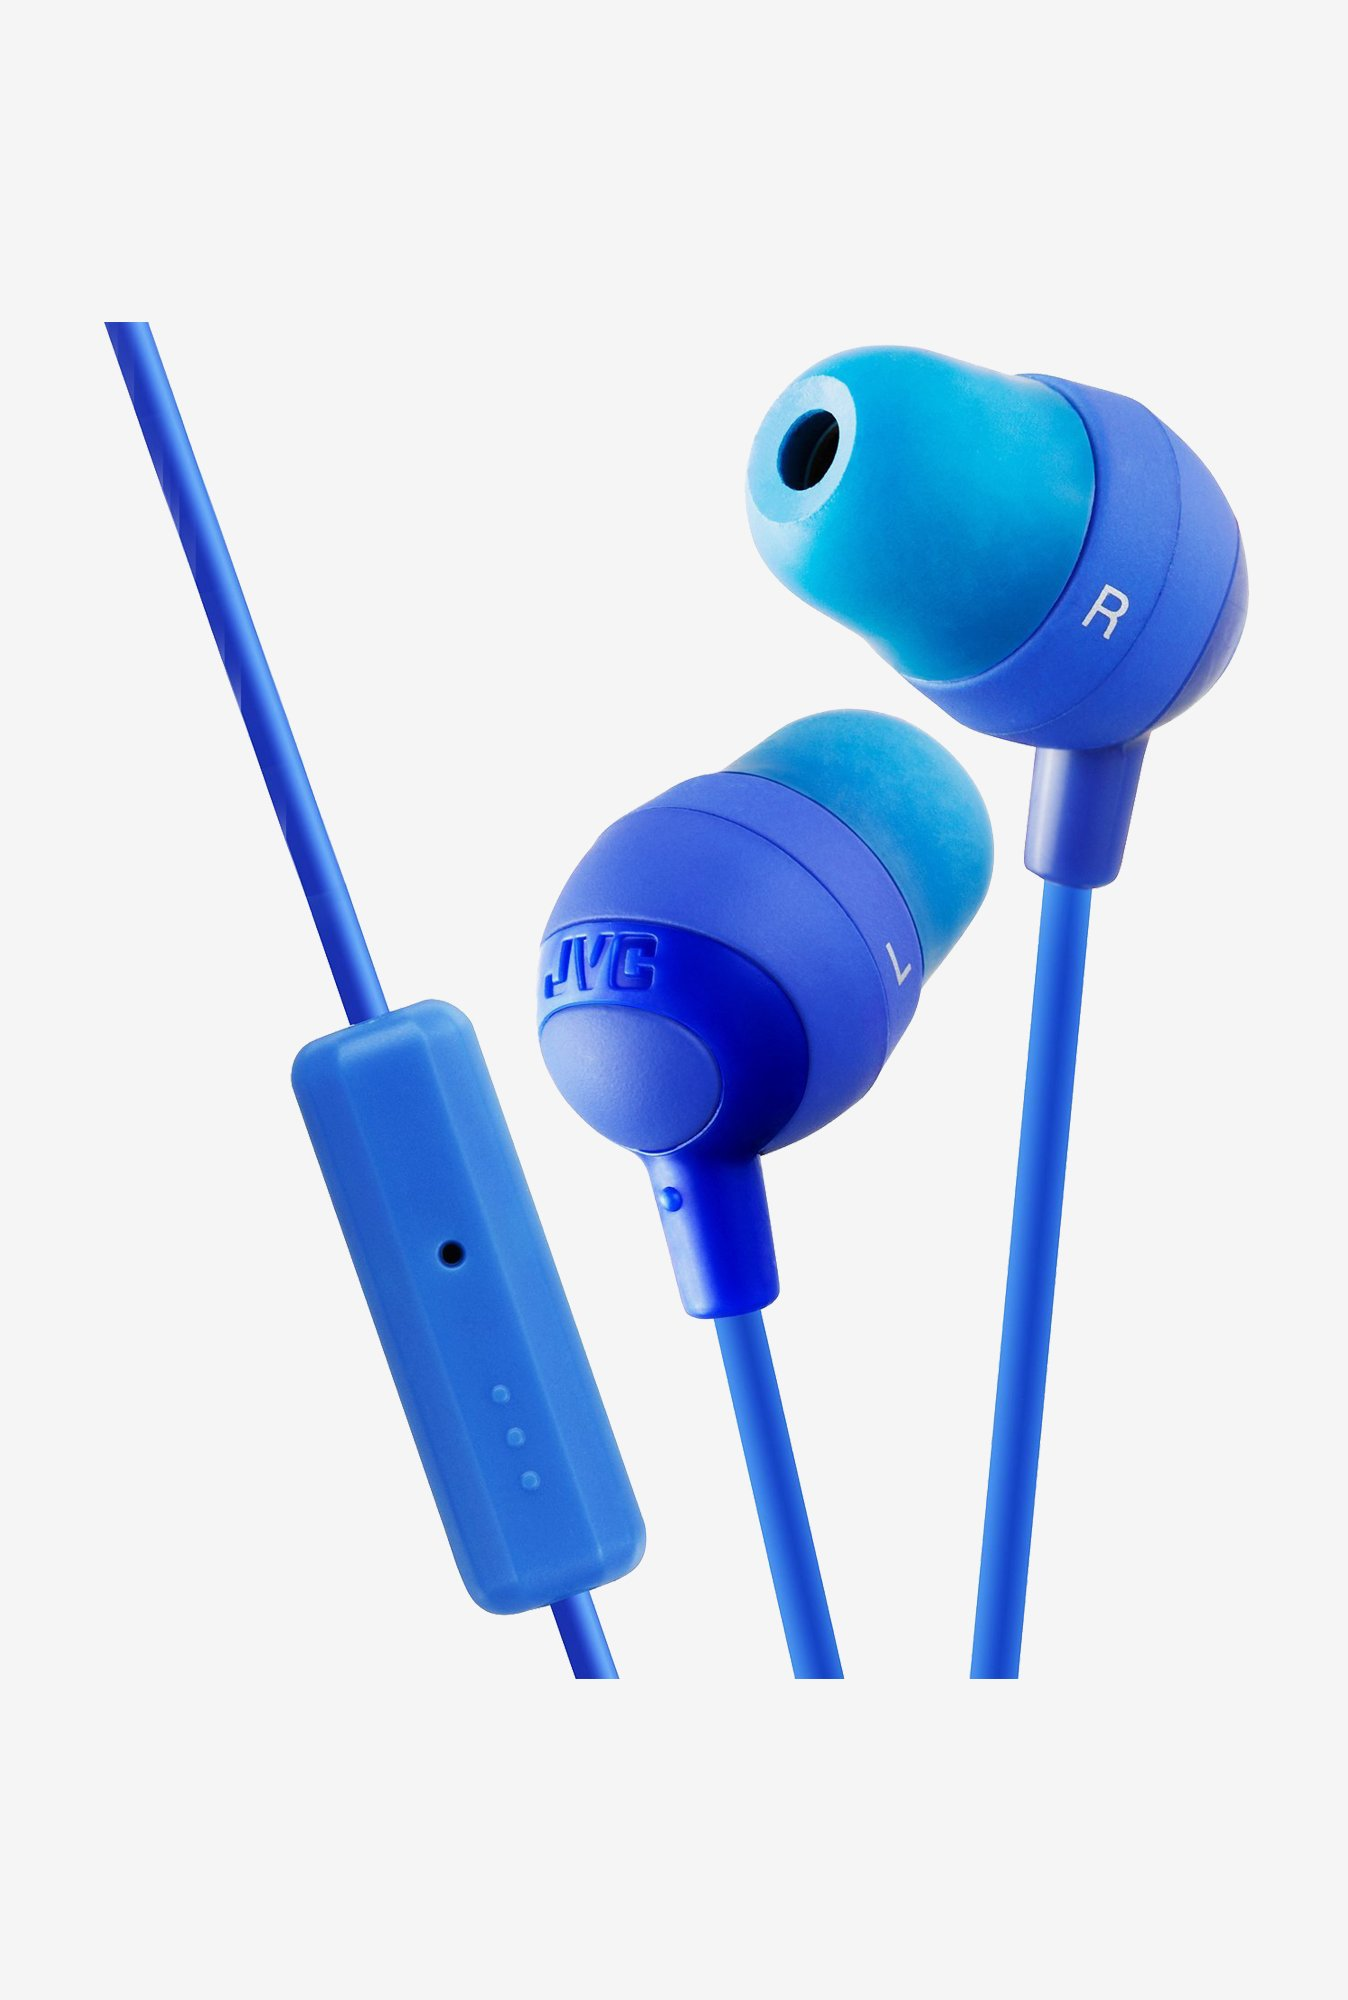 JVC Marshmallow HA-FR37 In The Ear Headphones (Blue)